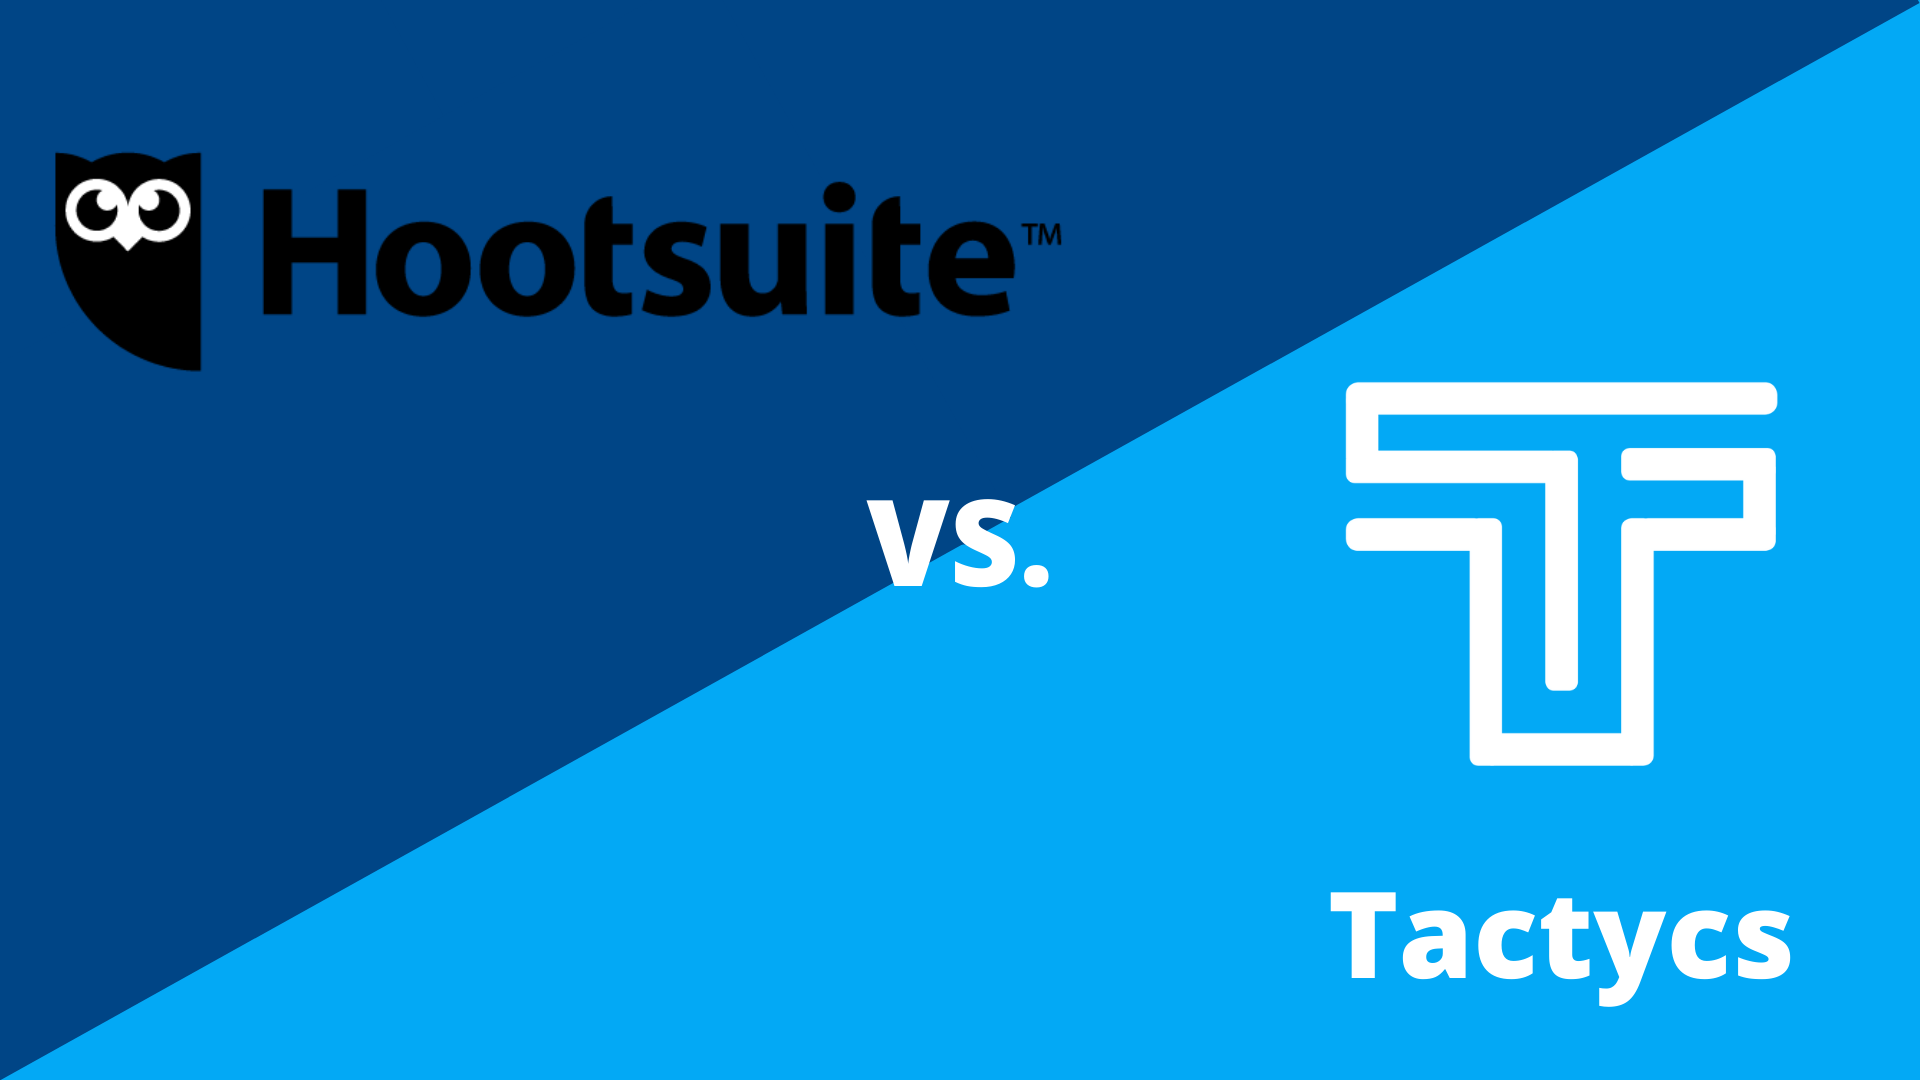 Hootsuite vs Tactycs Which Marketing Tool Is Best For You?